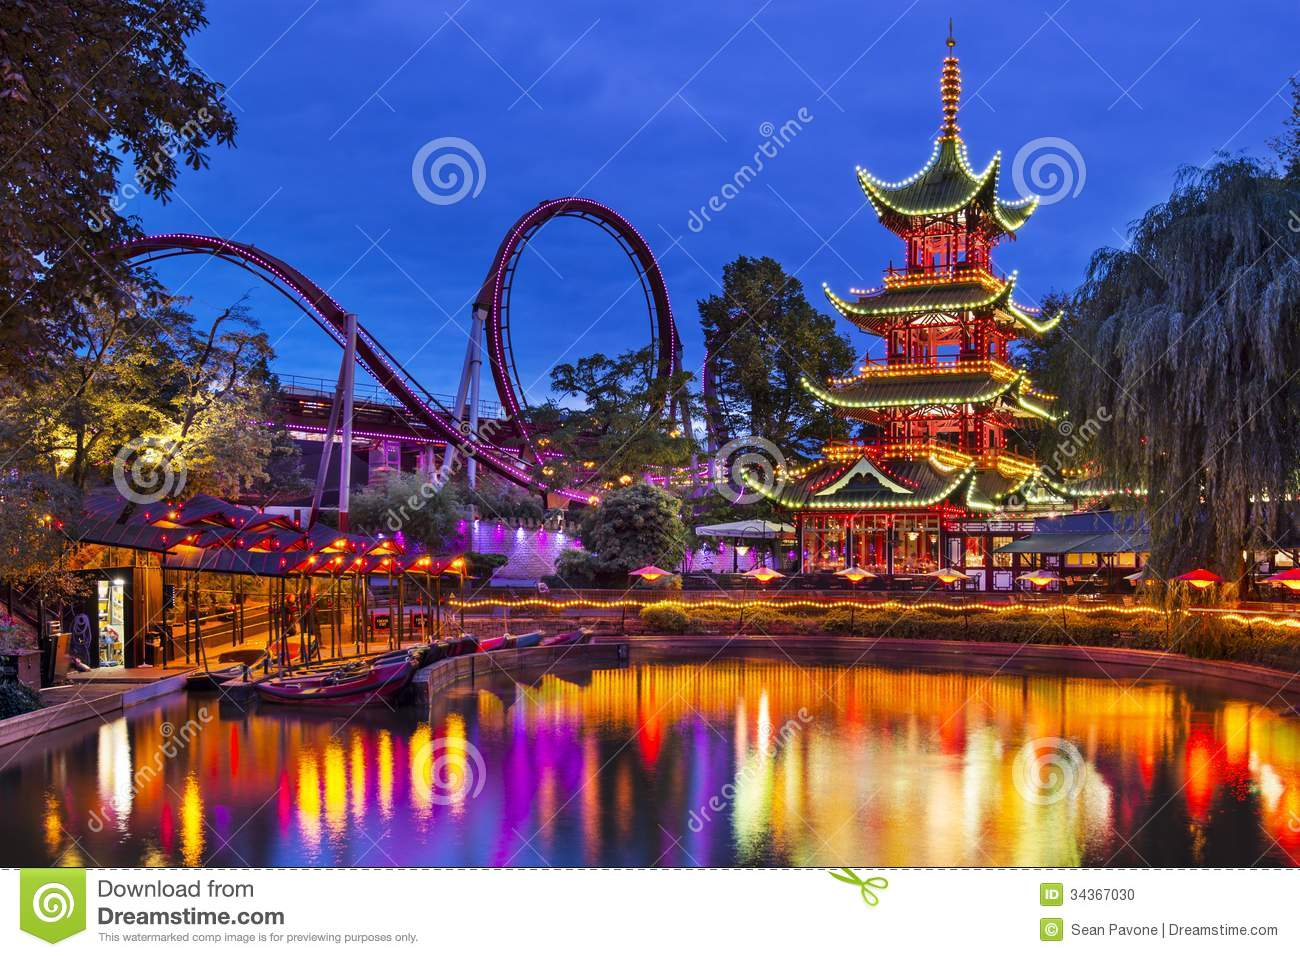 map of copenhagen denmark with Stock Photo Tivoli Gardens Copenhagen September September Copenhagen Denmark Amusement Park Second Oldest World Image34367030 on Hop On Hop Off Sightseeing besides Where In World Is Faroe Islands as well Road Map likewise Lego Shop Billund also 6814331195.